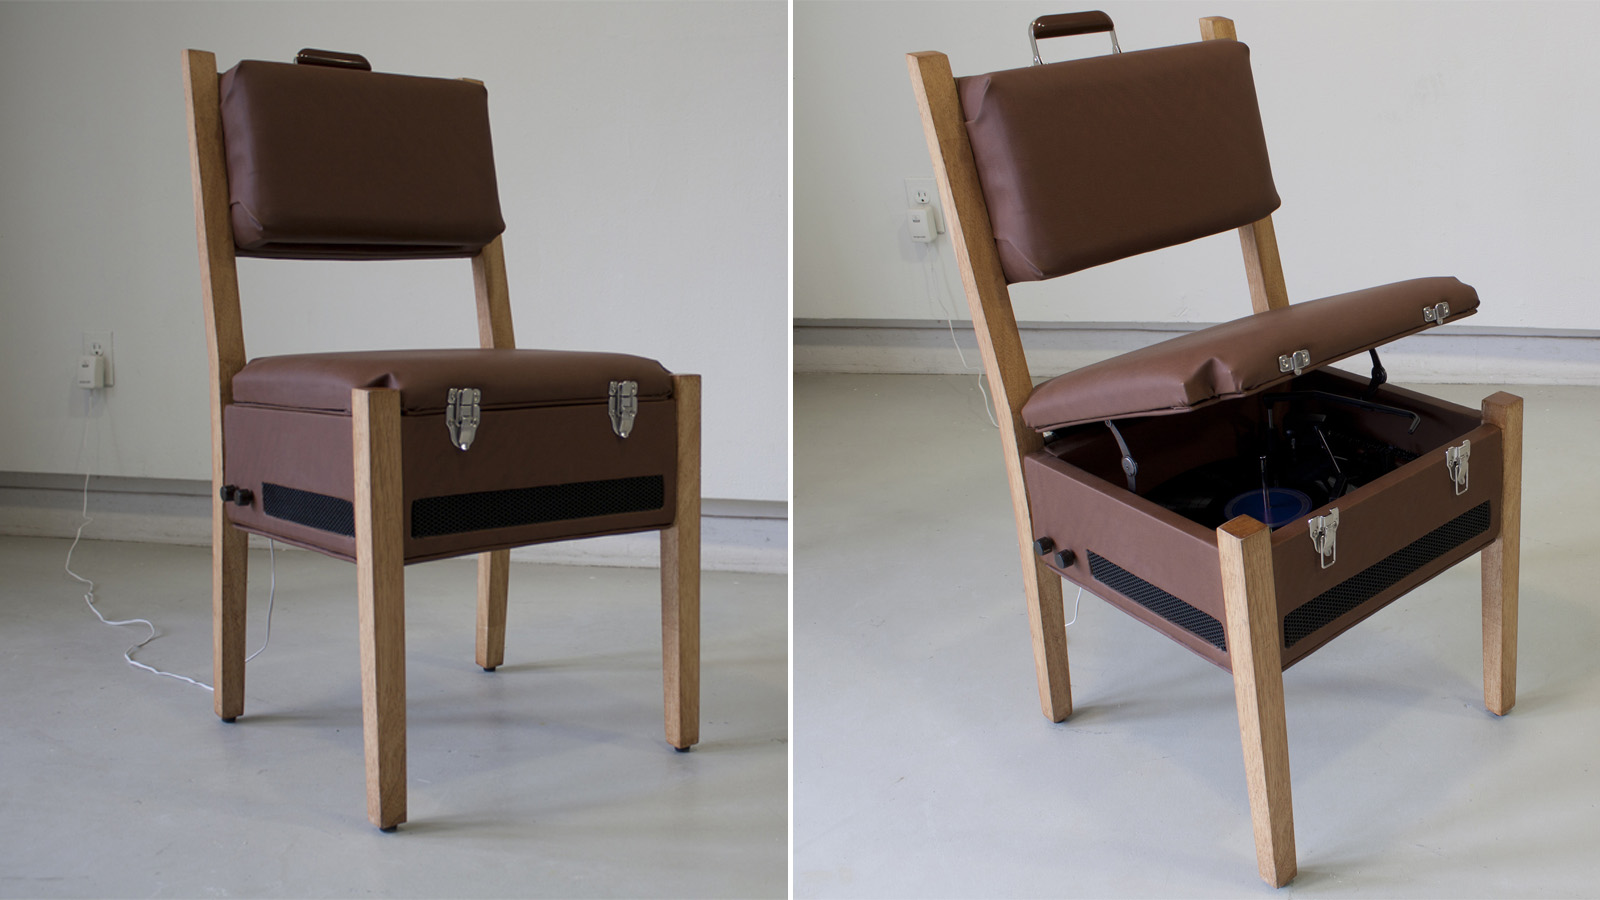 creative images furniture. Music Box Chair: For When You Need In Your Butt. Photo: Tristan Roland Creative Images Furniture F